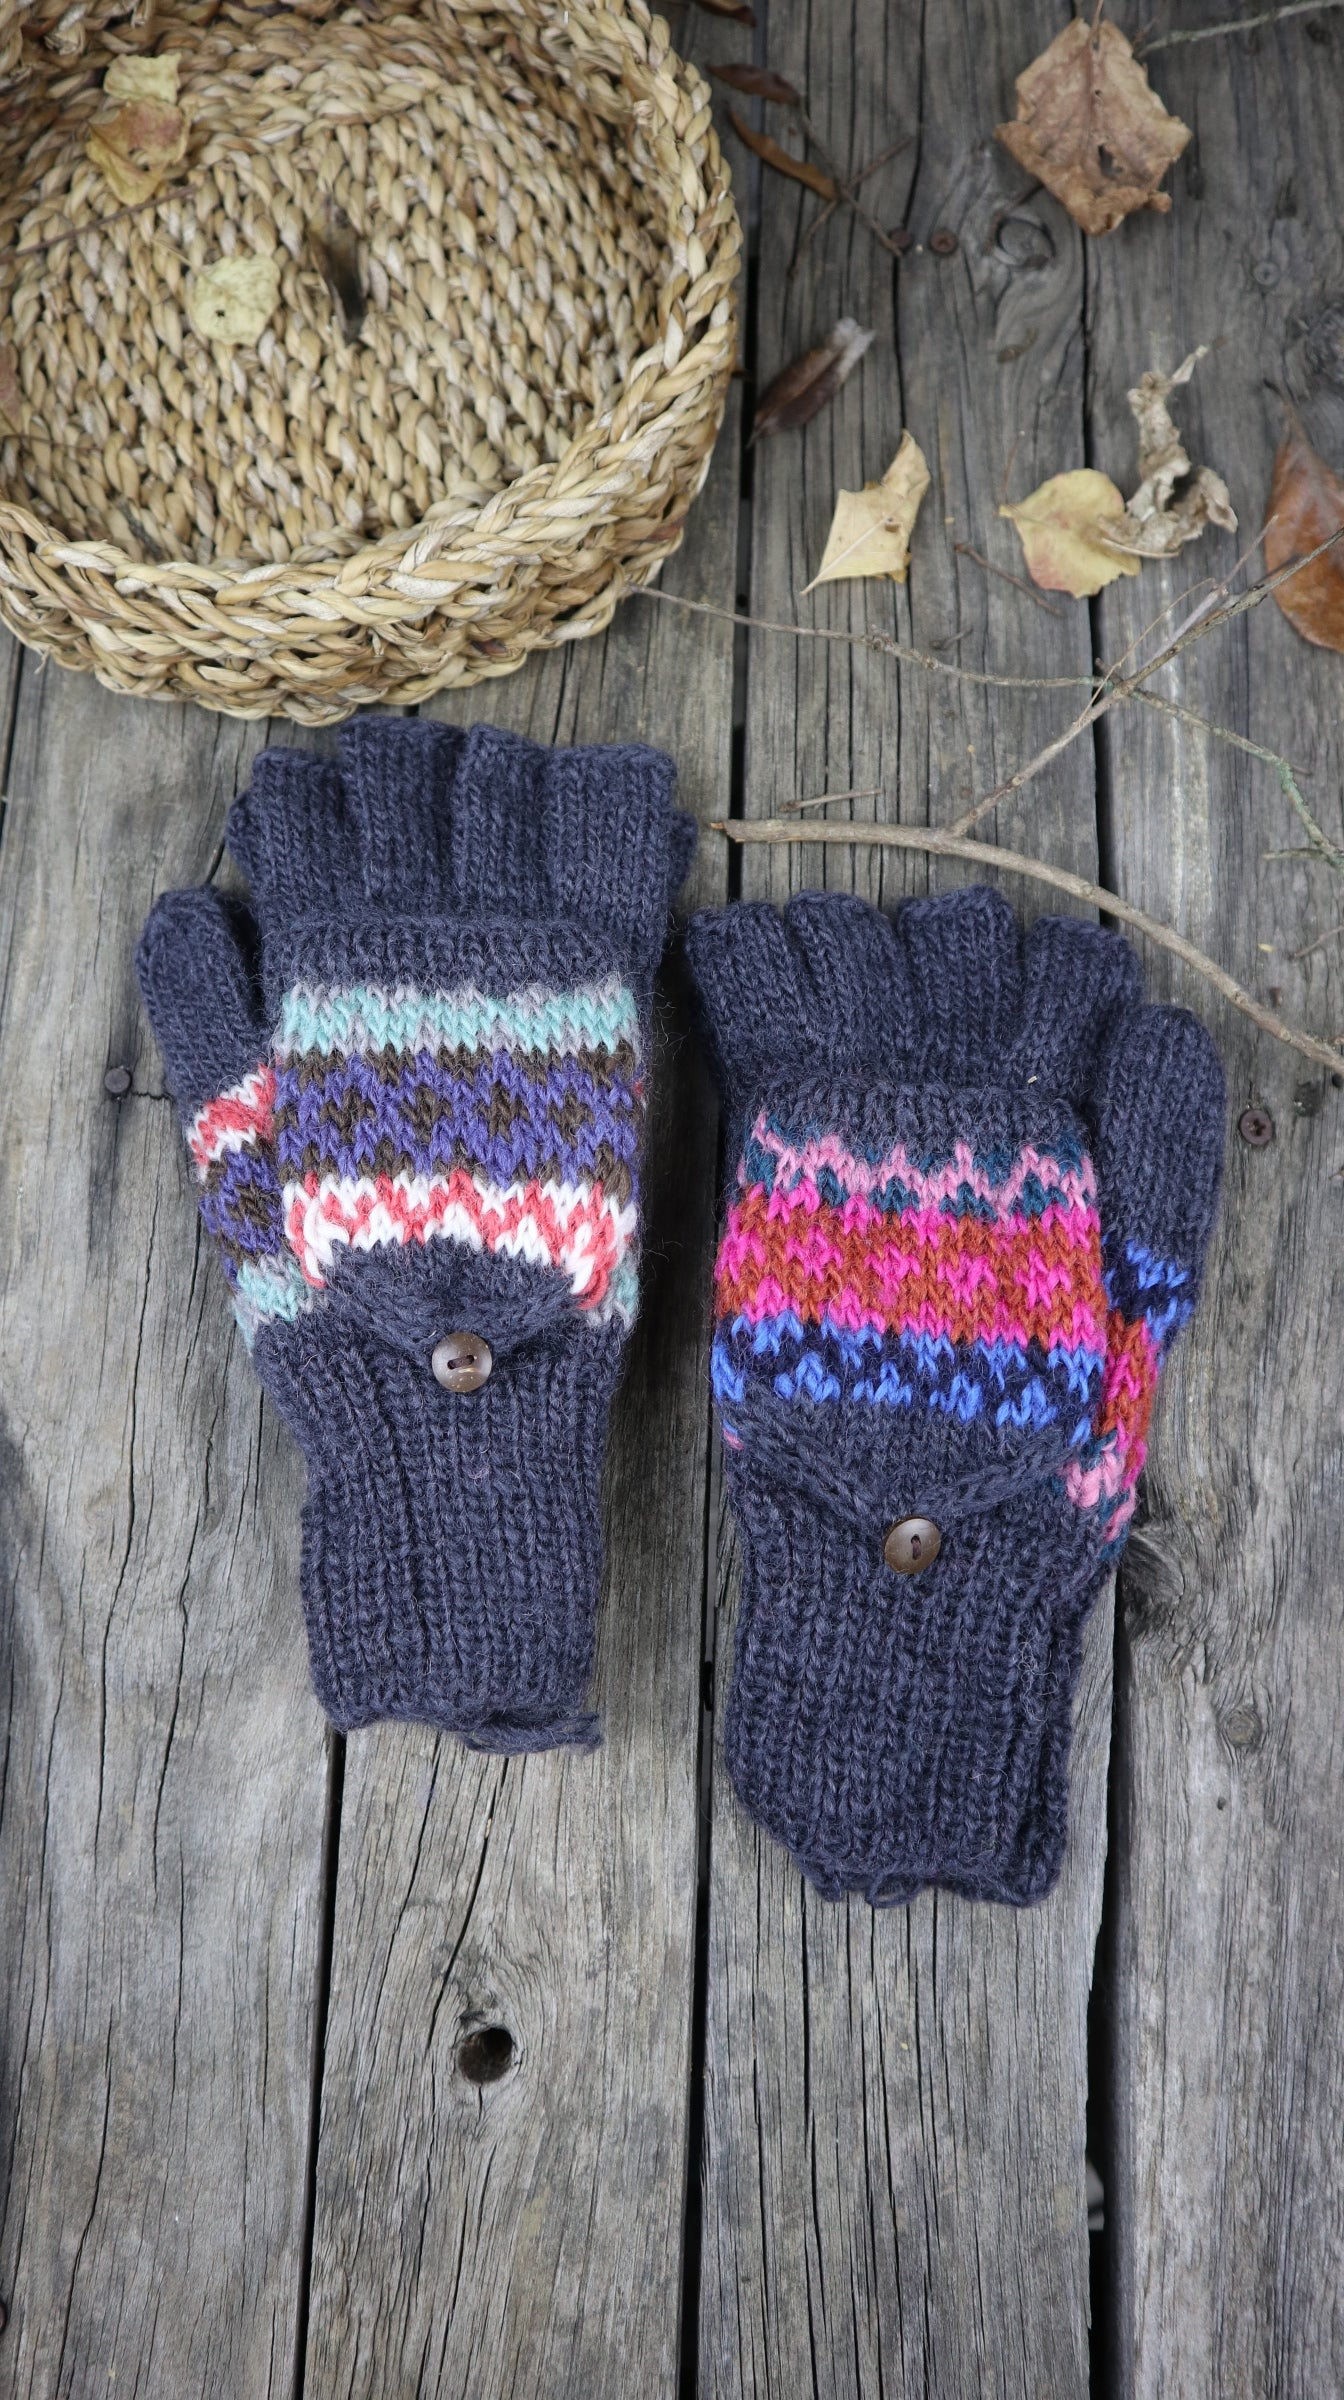 Fair Trade Ethical Adult Fingerless Gloves with Cap Patterned Design Greys